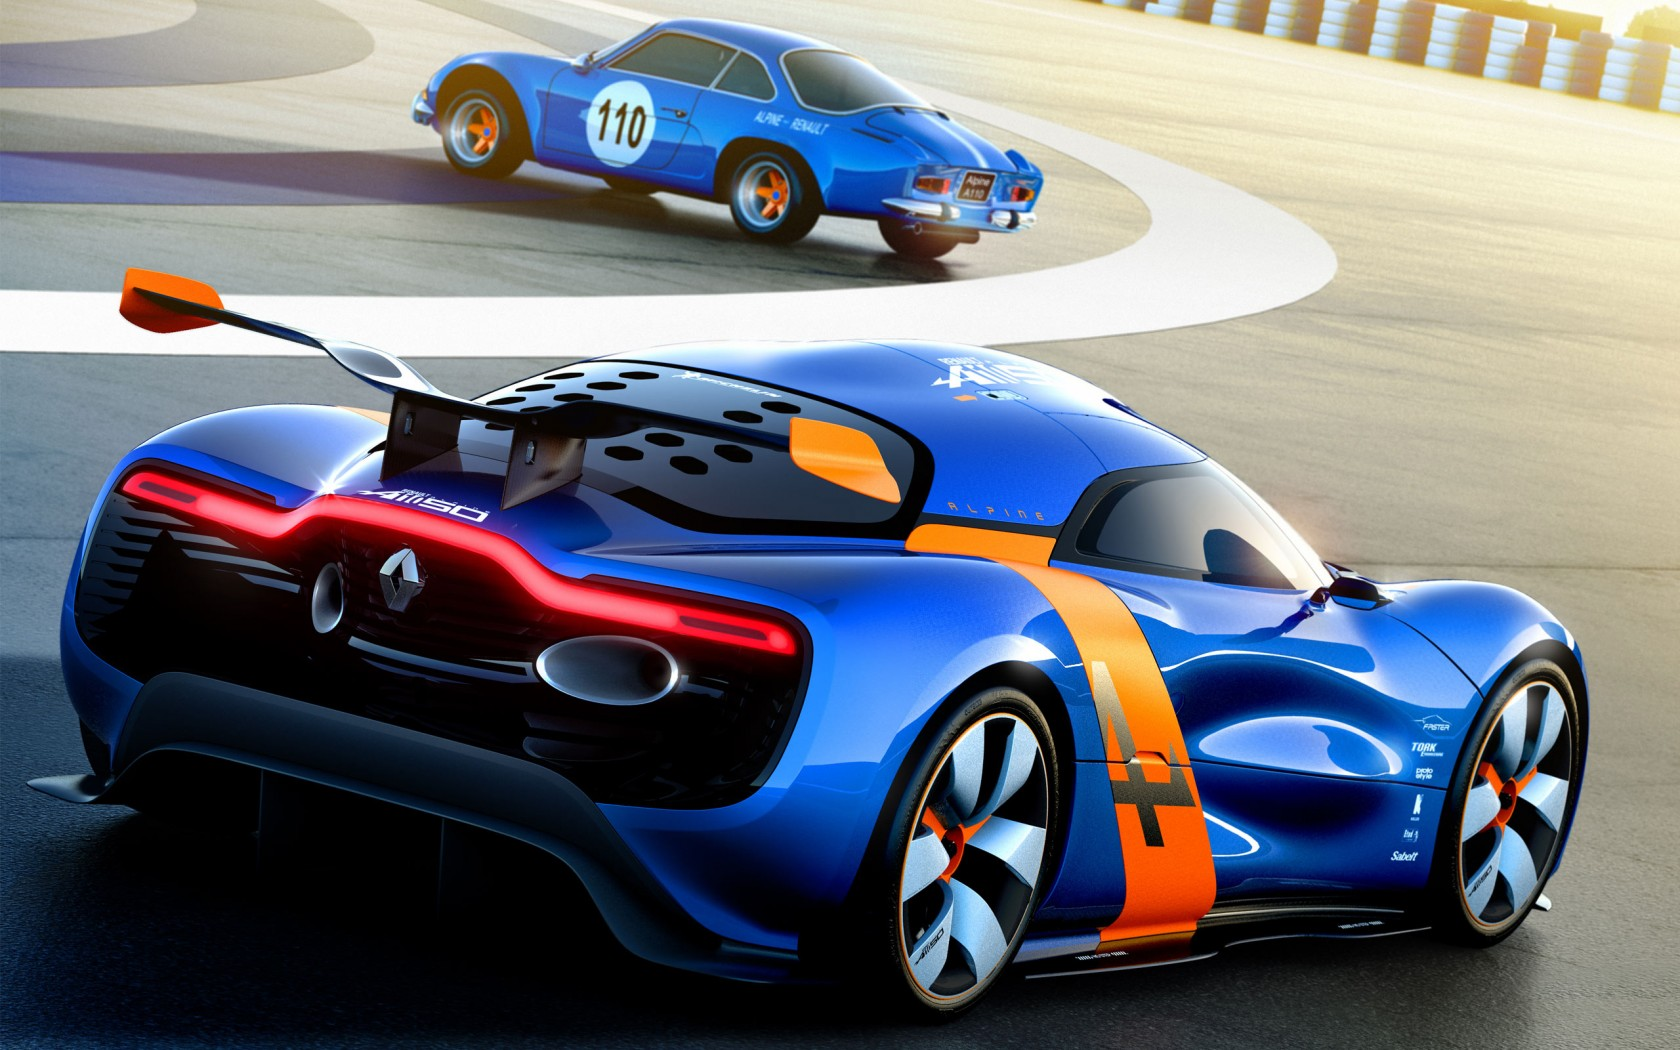 renault alpine a110 50 concept 4 wallpaper hd car wallpapers id 2733. Black Bedroom Furniture Sets. Home Design Ideas